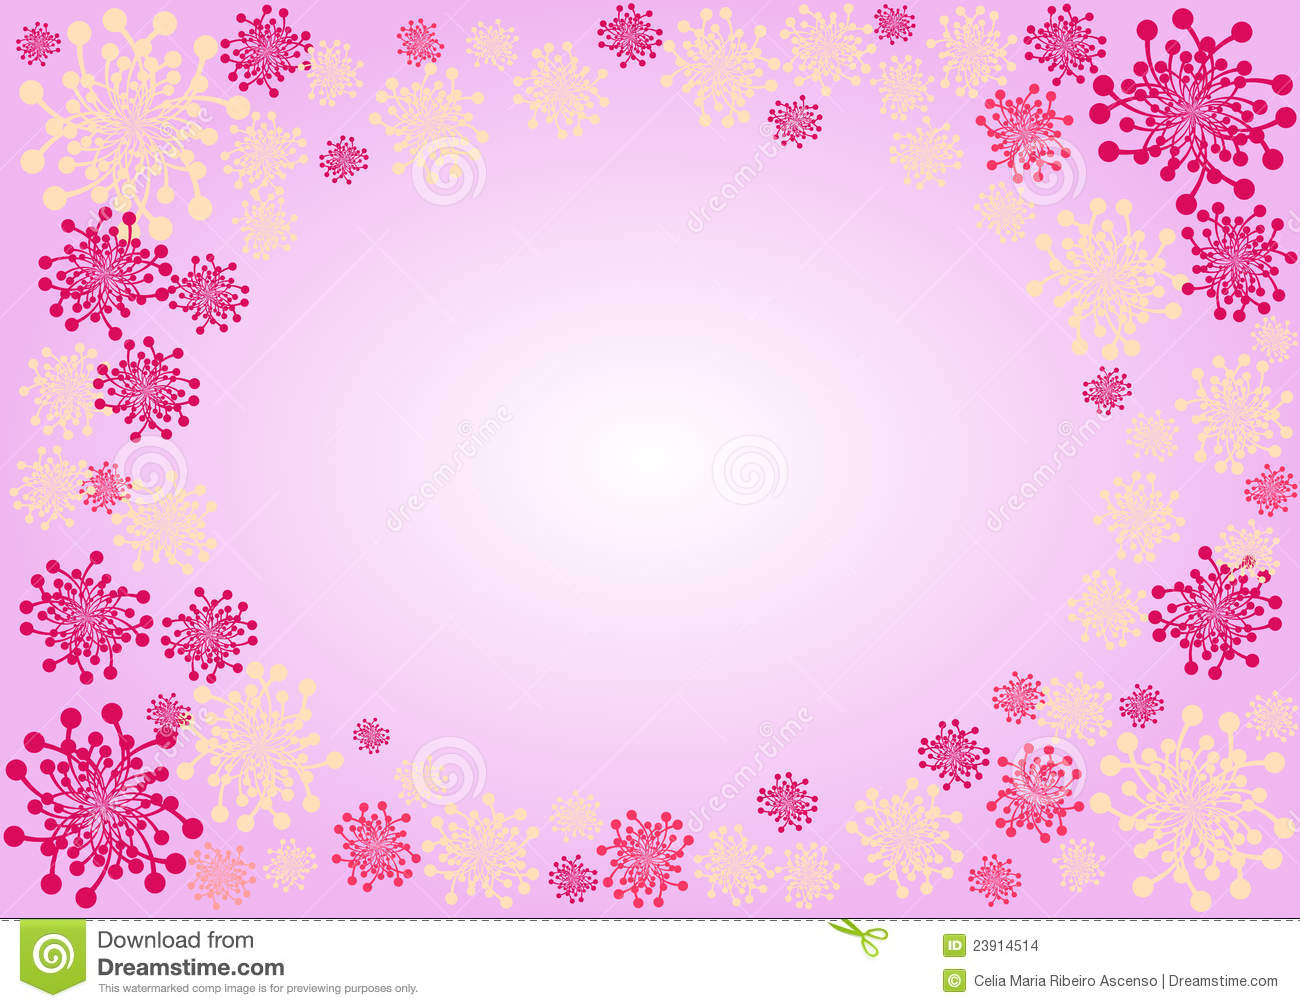 Pink flowers border stock illustration illustration of dandelion pink flowers border mightylinksfo Choice Image